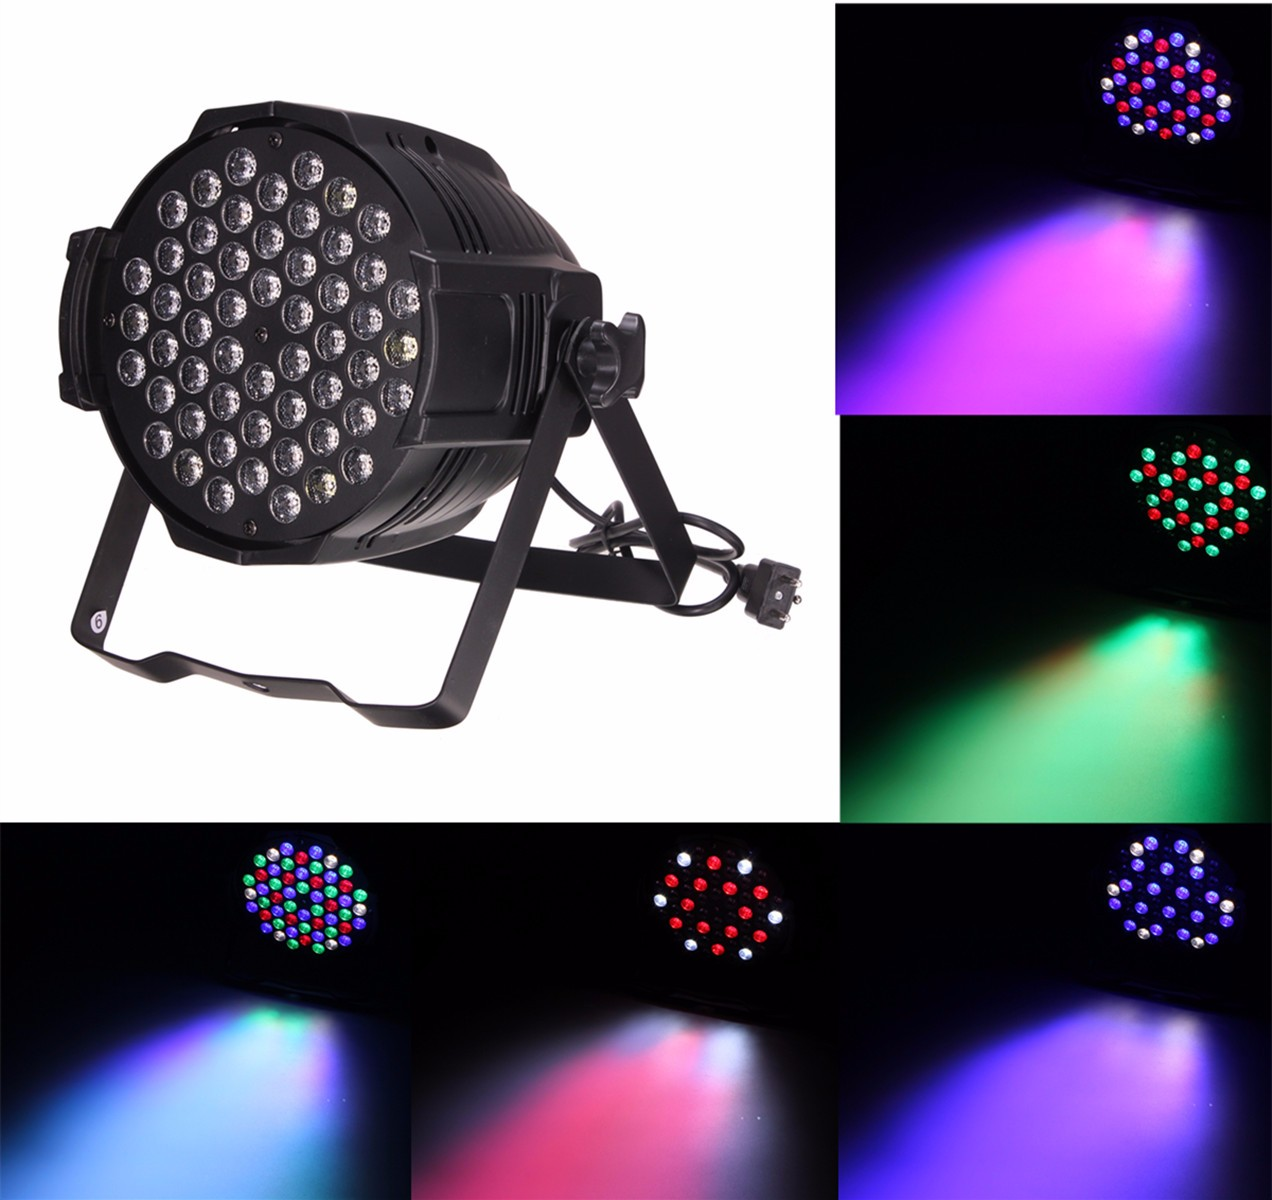 54pcs 3W 6CH LED RBGW 180W Stage Par Lighting Music Club Disco DJ Party Bar54pcs 3W 6CH LED RBGW 180W Stage Par Lighting Music Club Disco DJ Party Bar